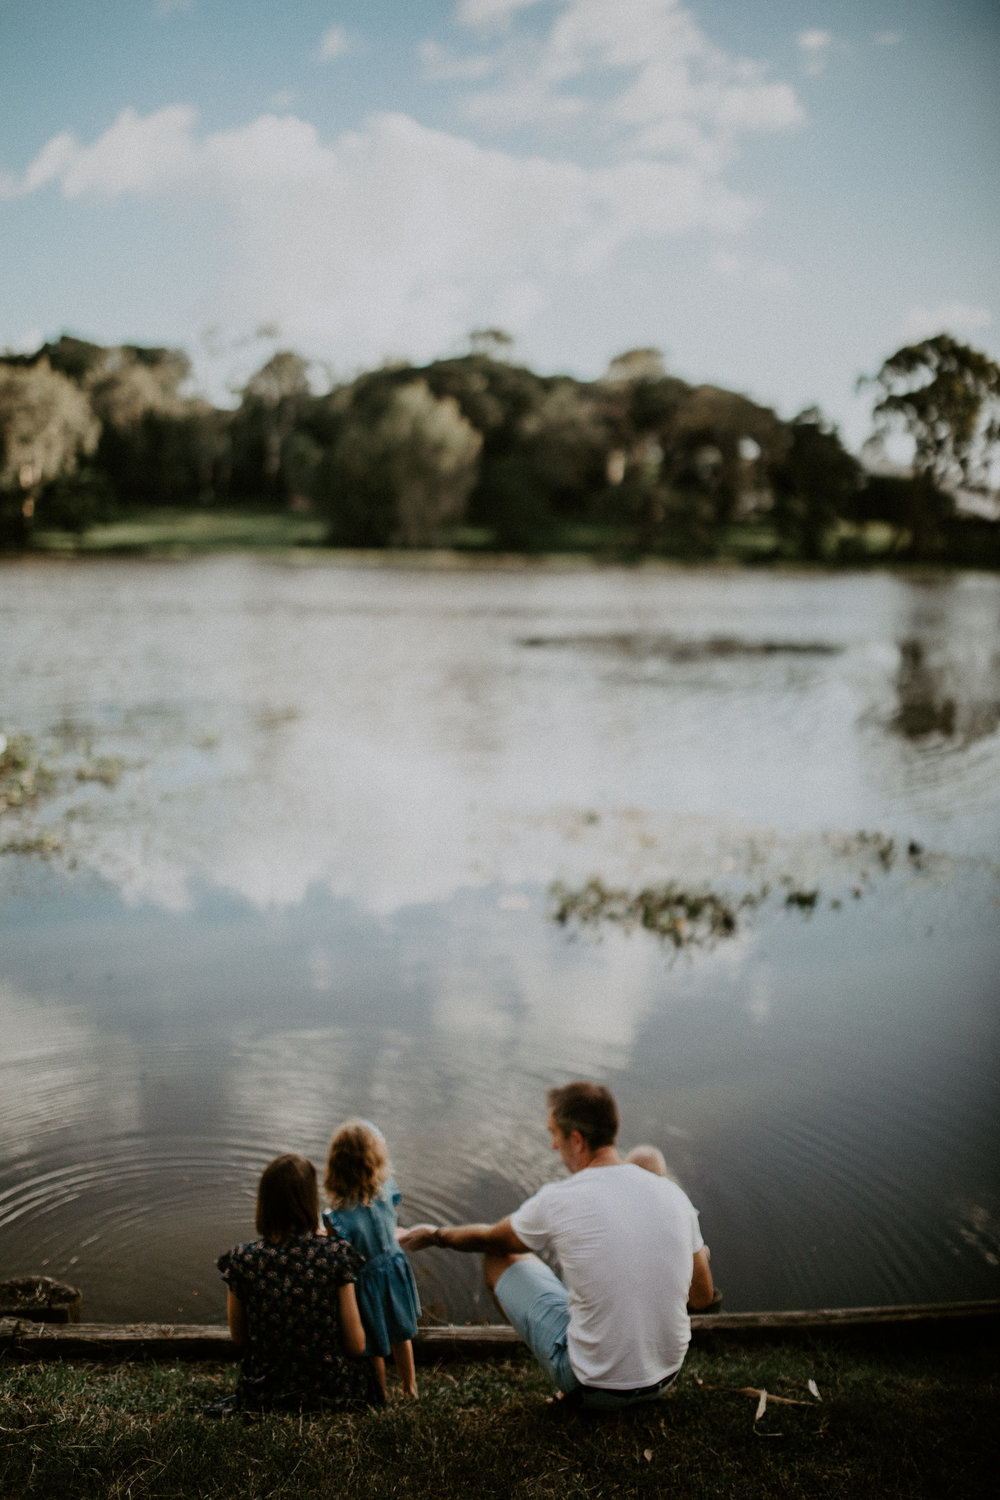 Baby-outdoor-family-lifestyle-townsville-candid-photographer--7.jpg